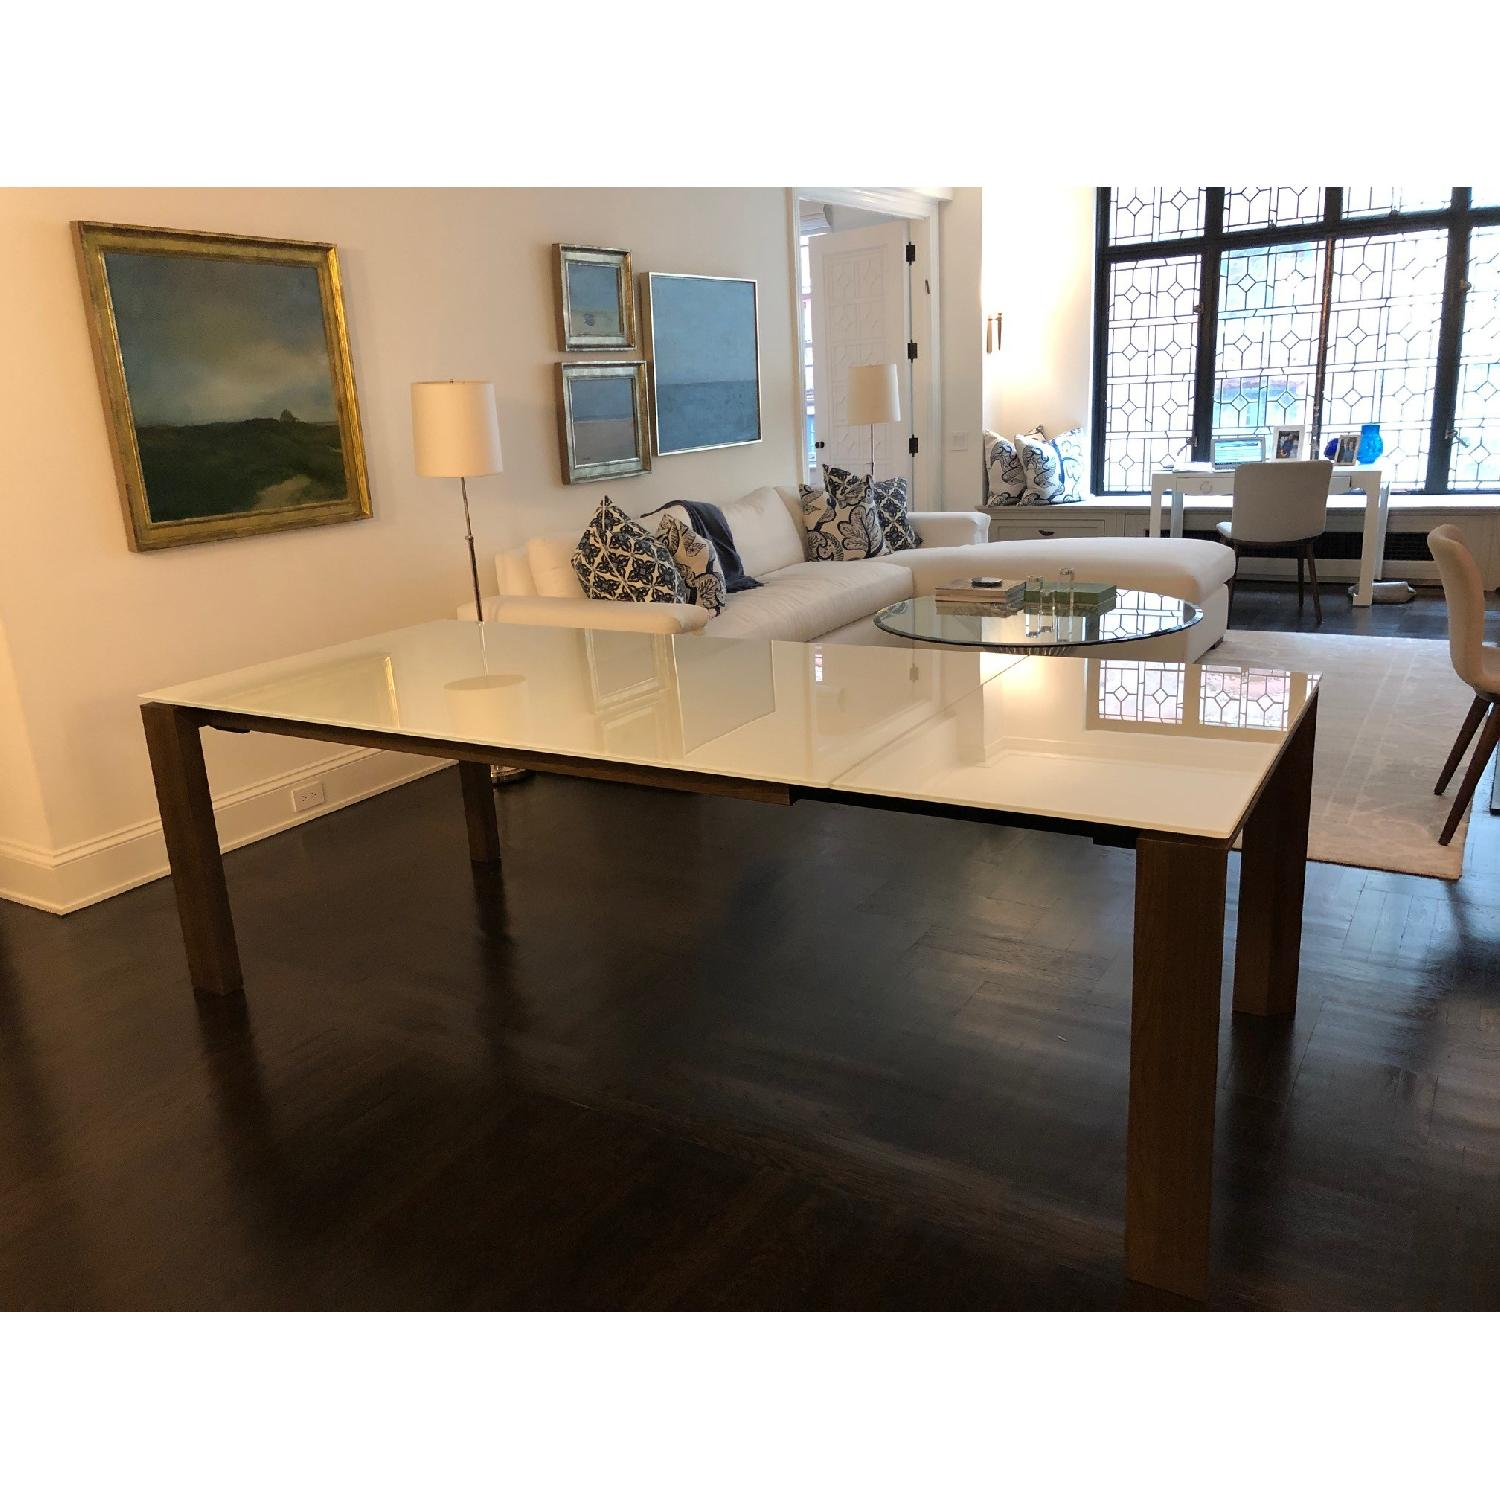 Calligaris Omnia Extendable Table w/ White Glass Top - image-1